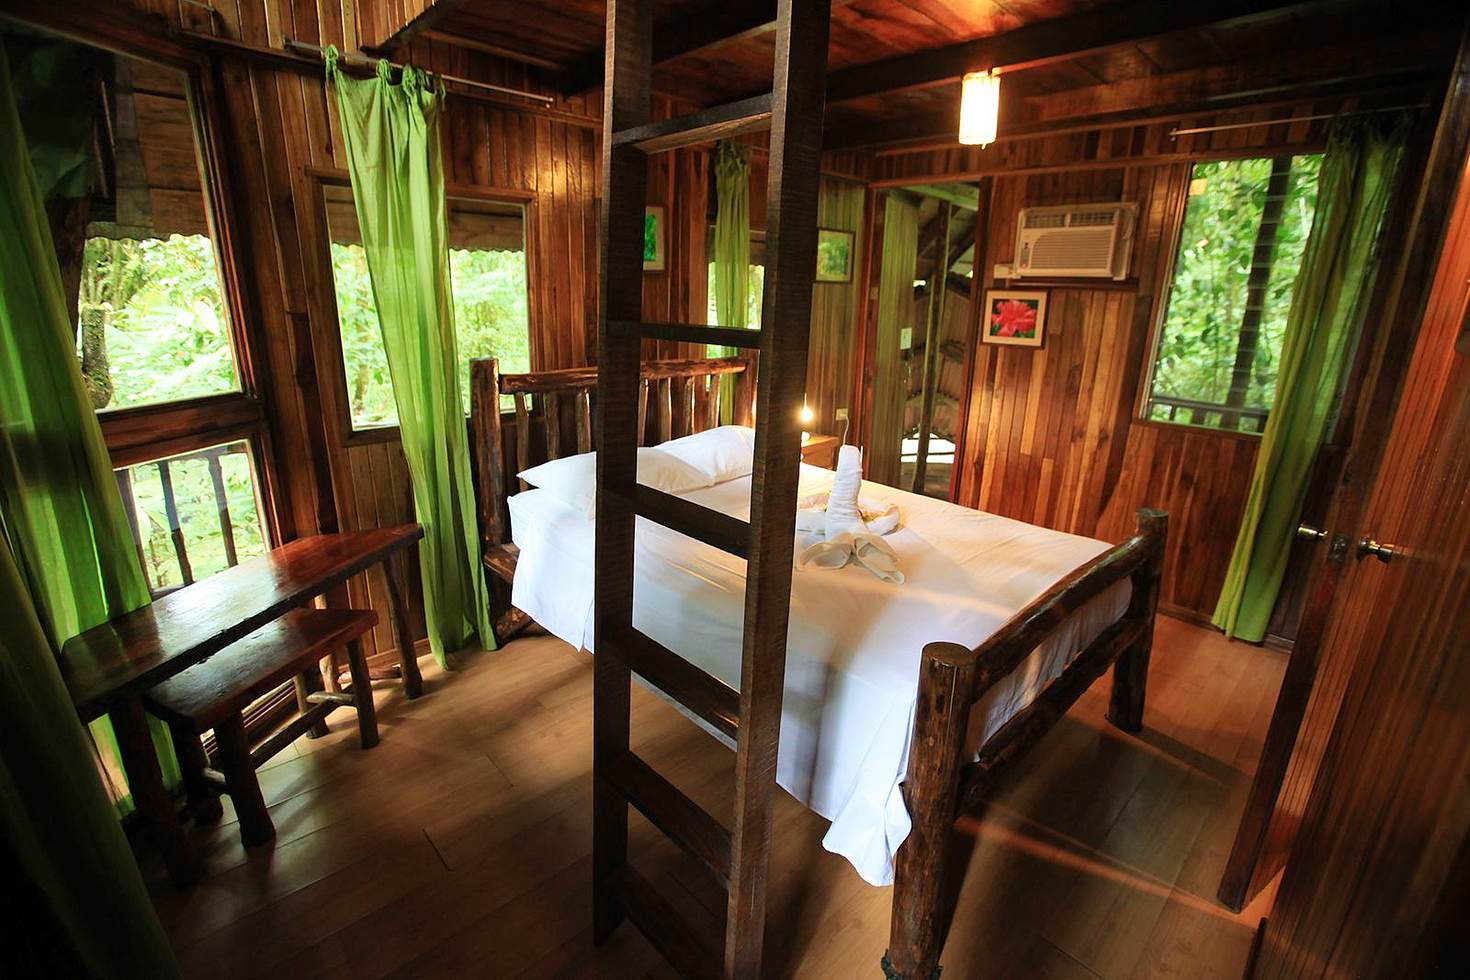 The comfortable interior of the tree house at Tree Houses Hotel © Tree Houses Hotel